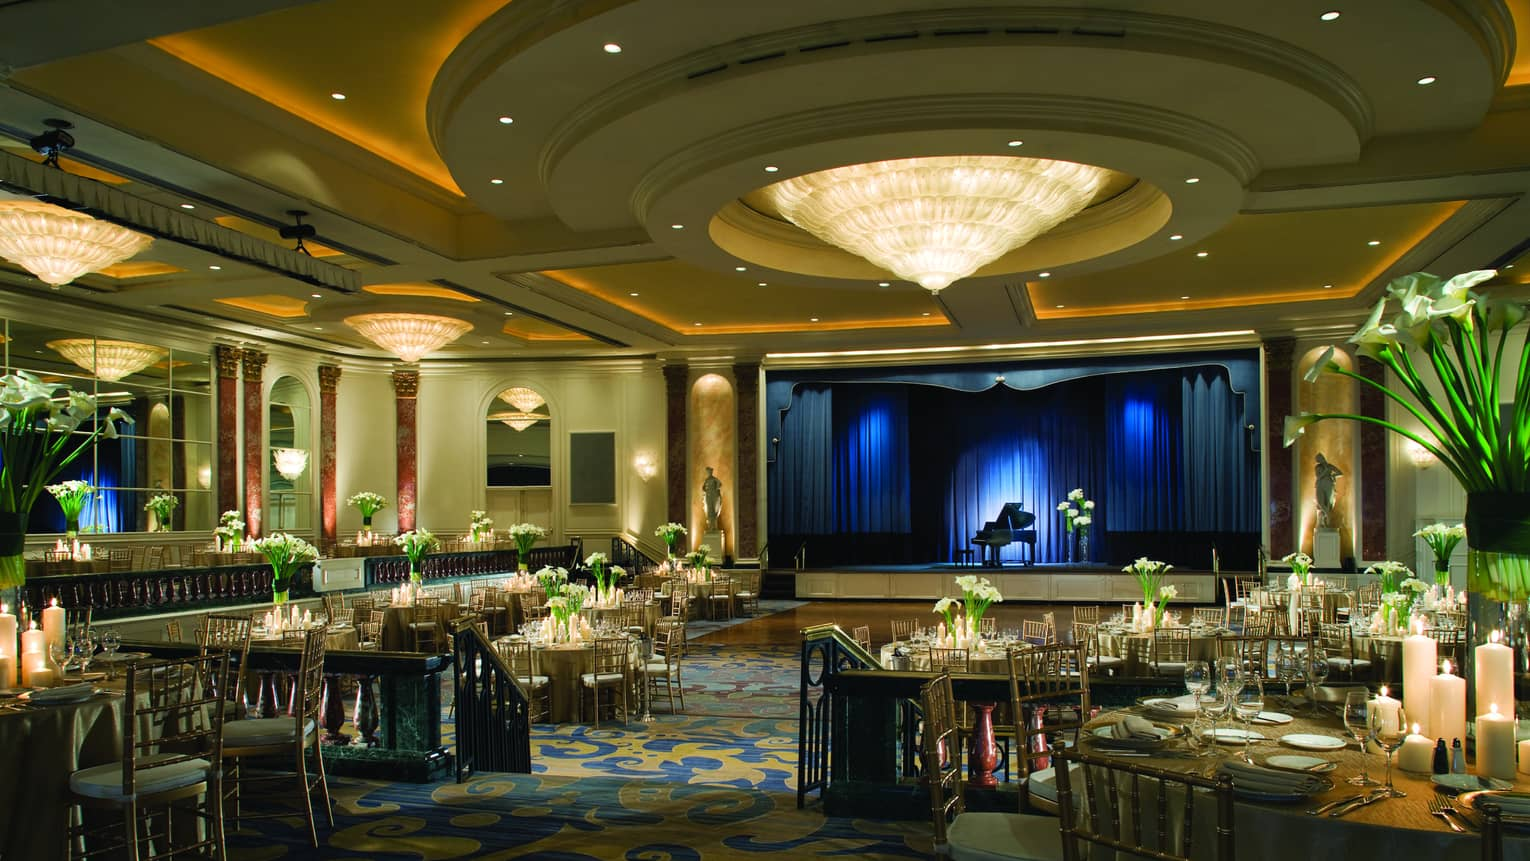 Cone shaped chandelier and round ceiling over banquet room dance floor by stage with baby grand piano, blue lights